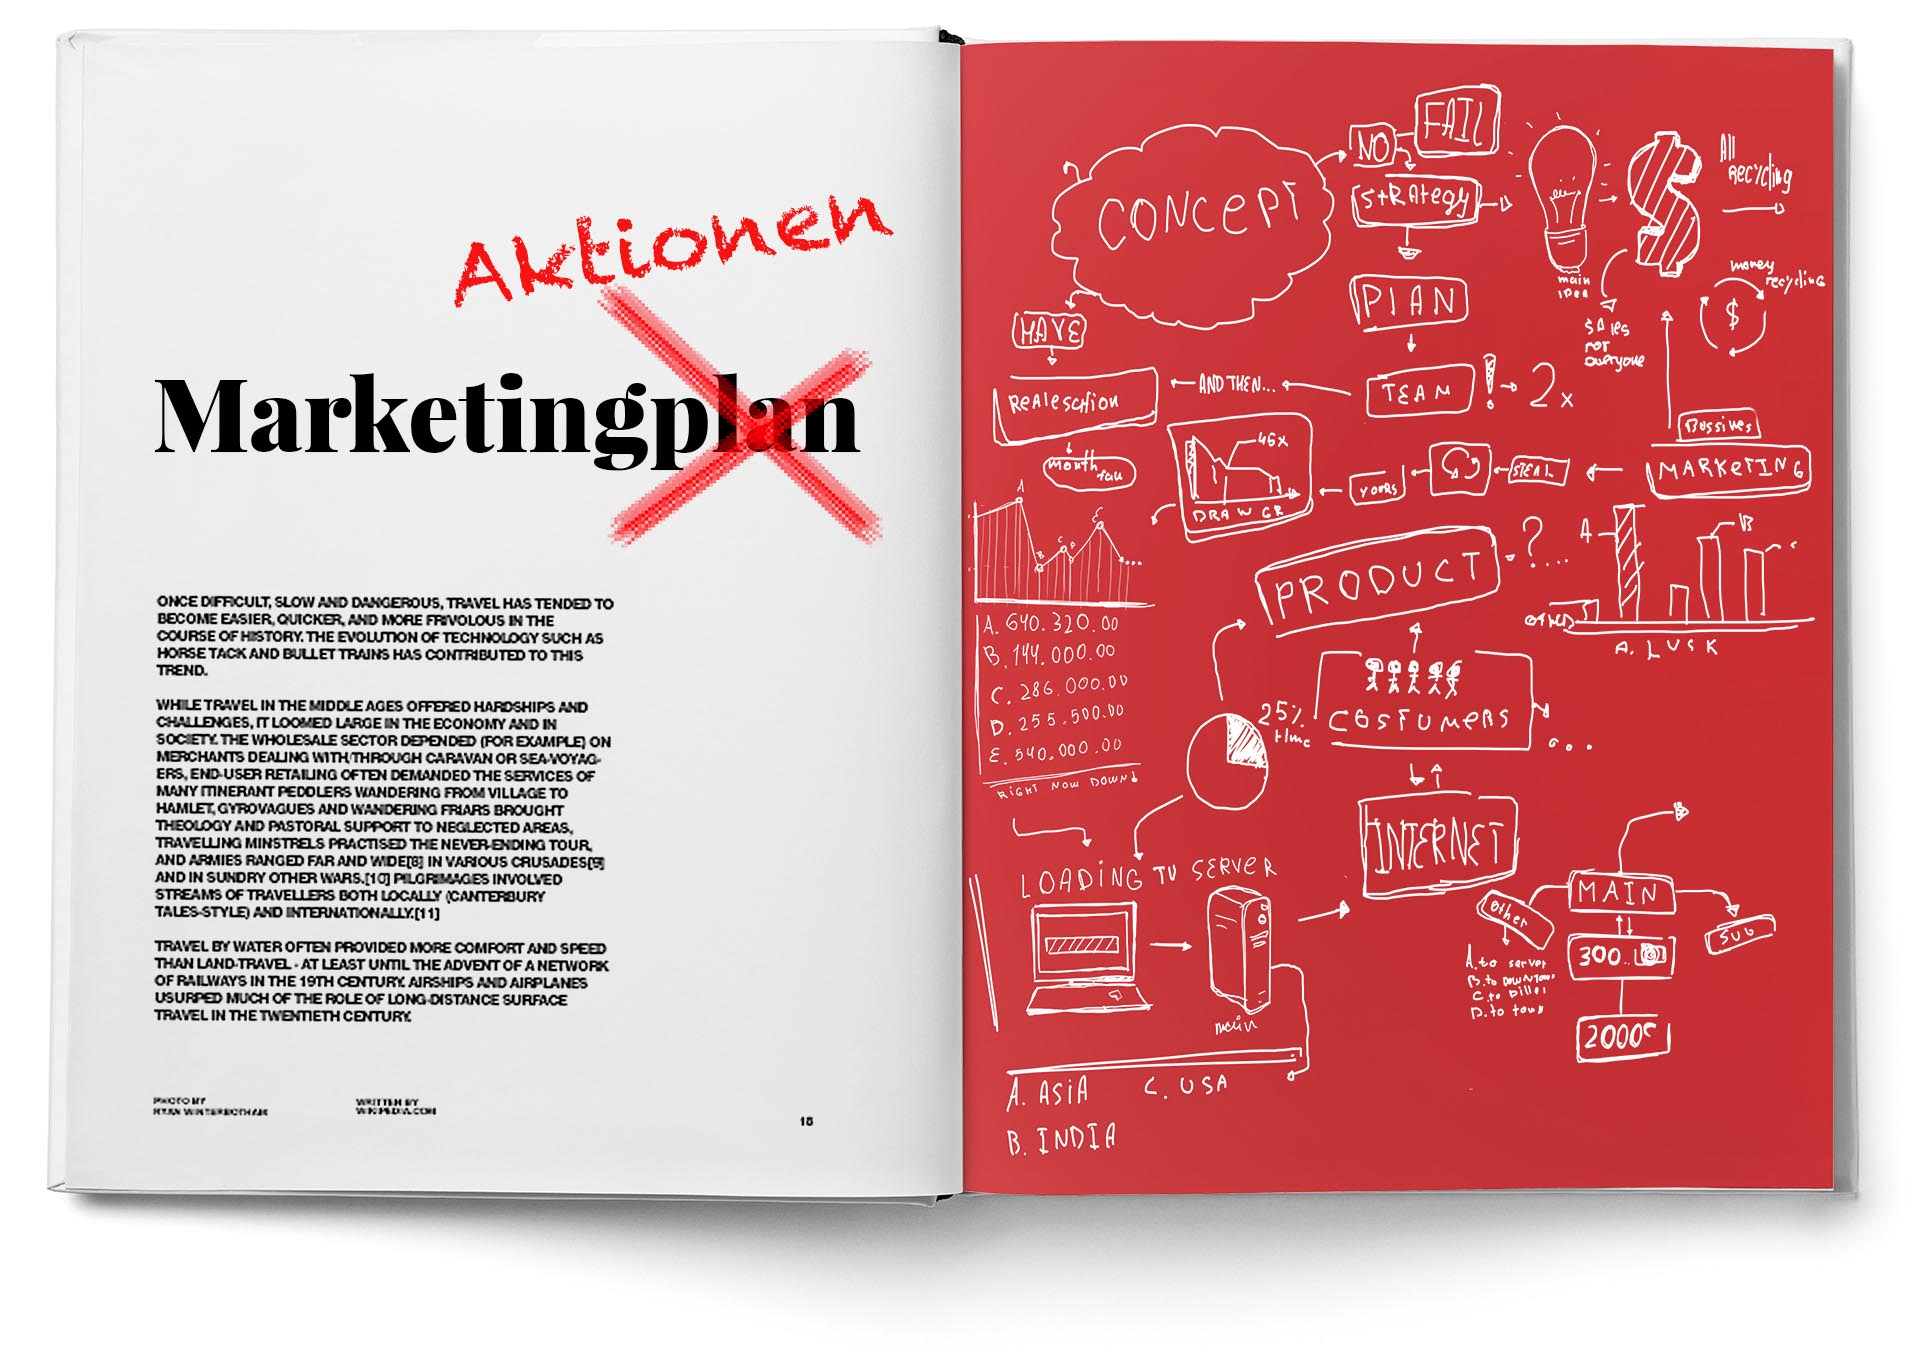 Online Marketingplan, Internetagentur St. Gallen